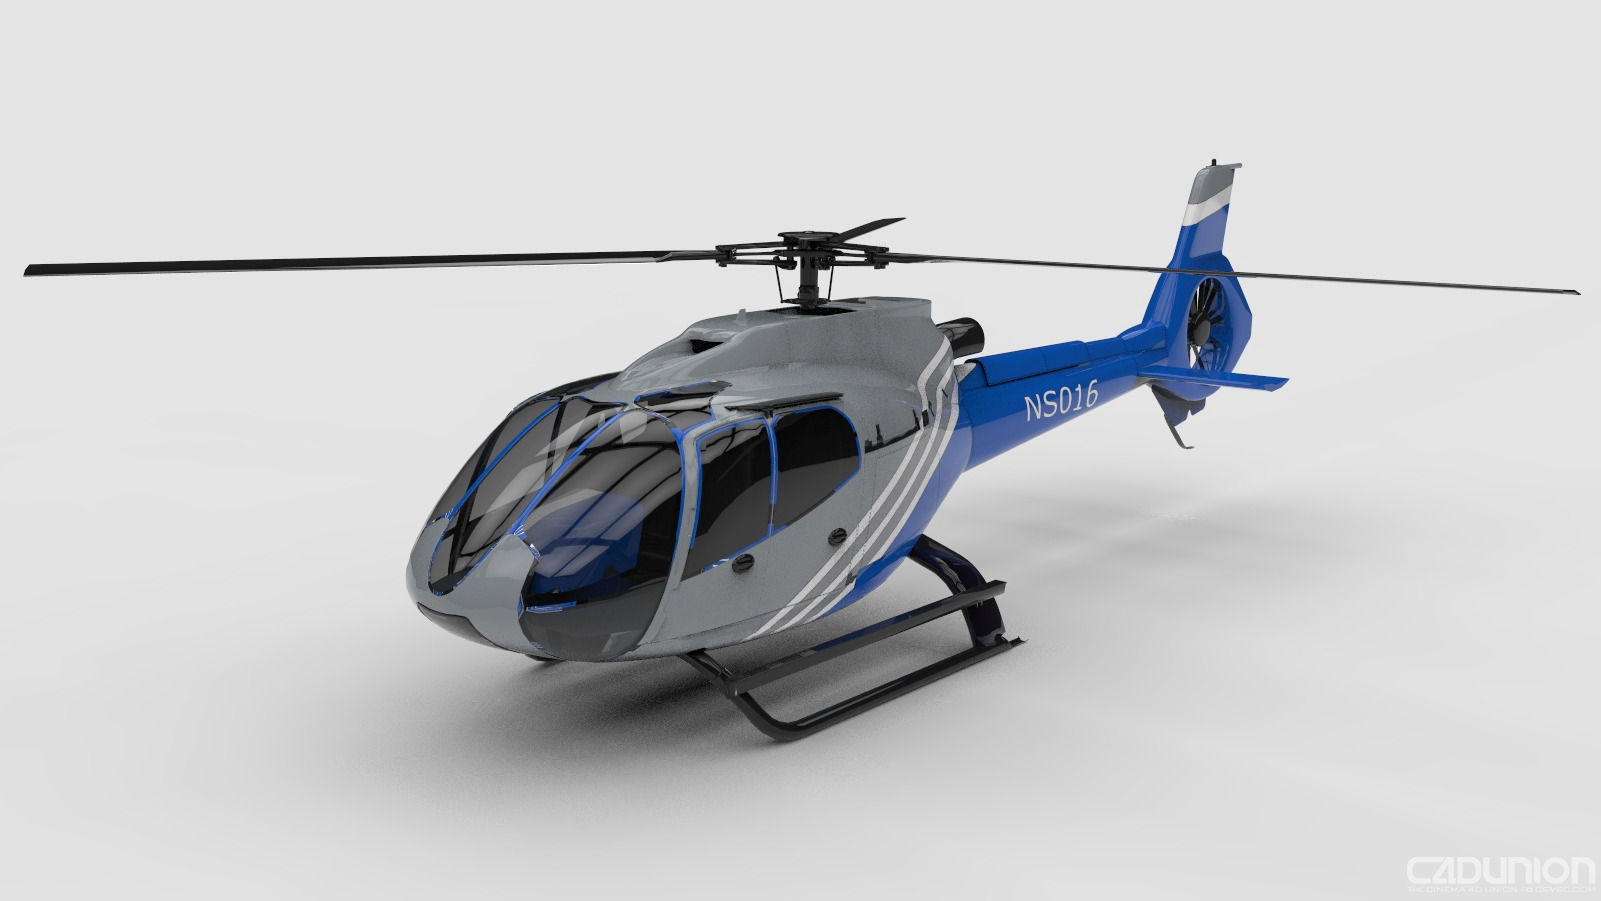 generic-helicopter-3d-model-obj-3ds-c4d.jpg